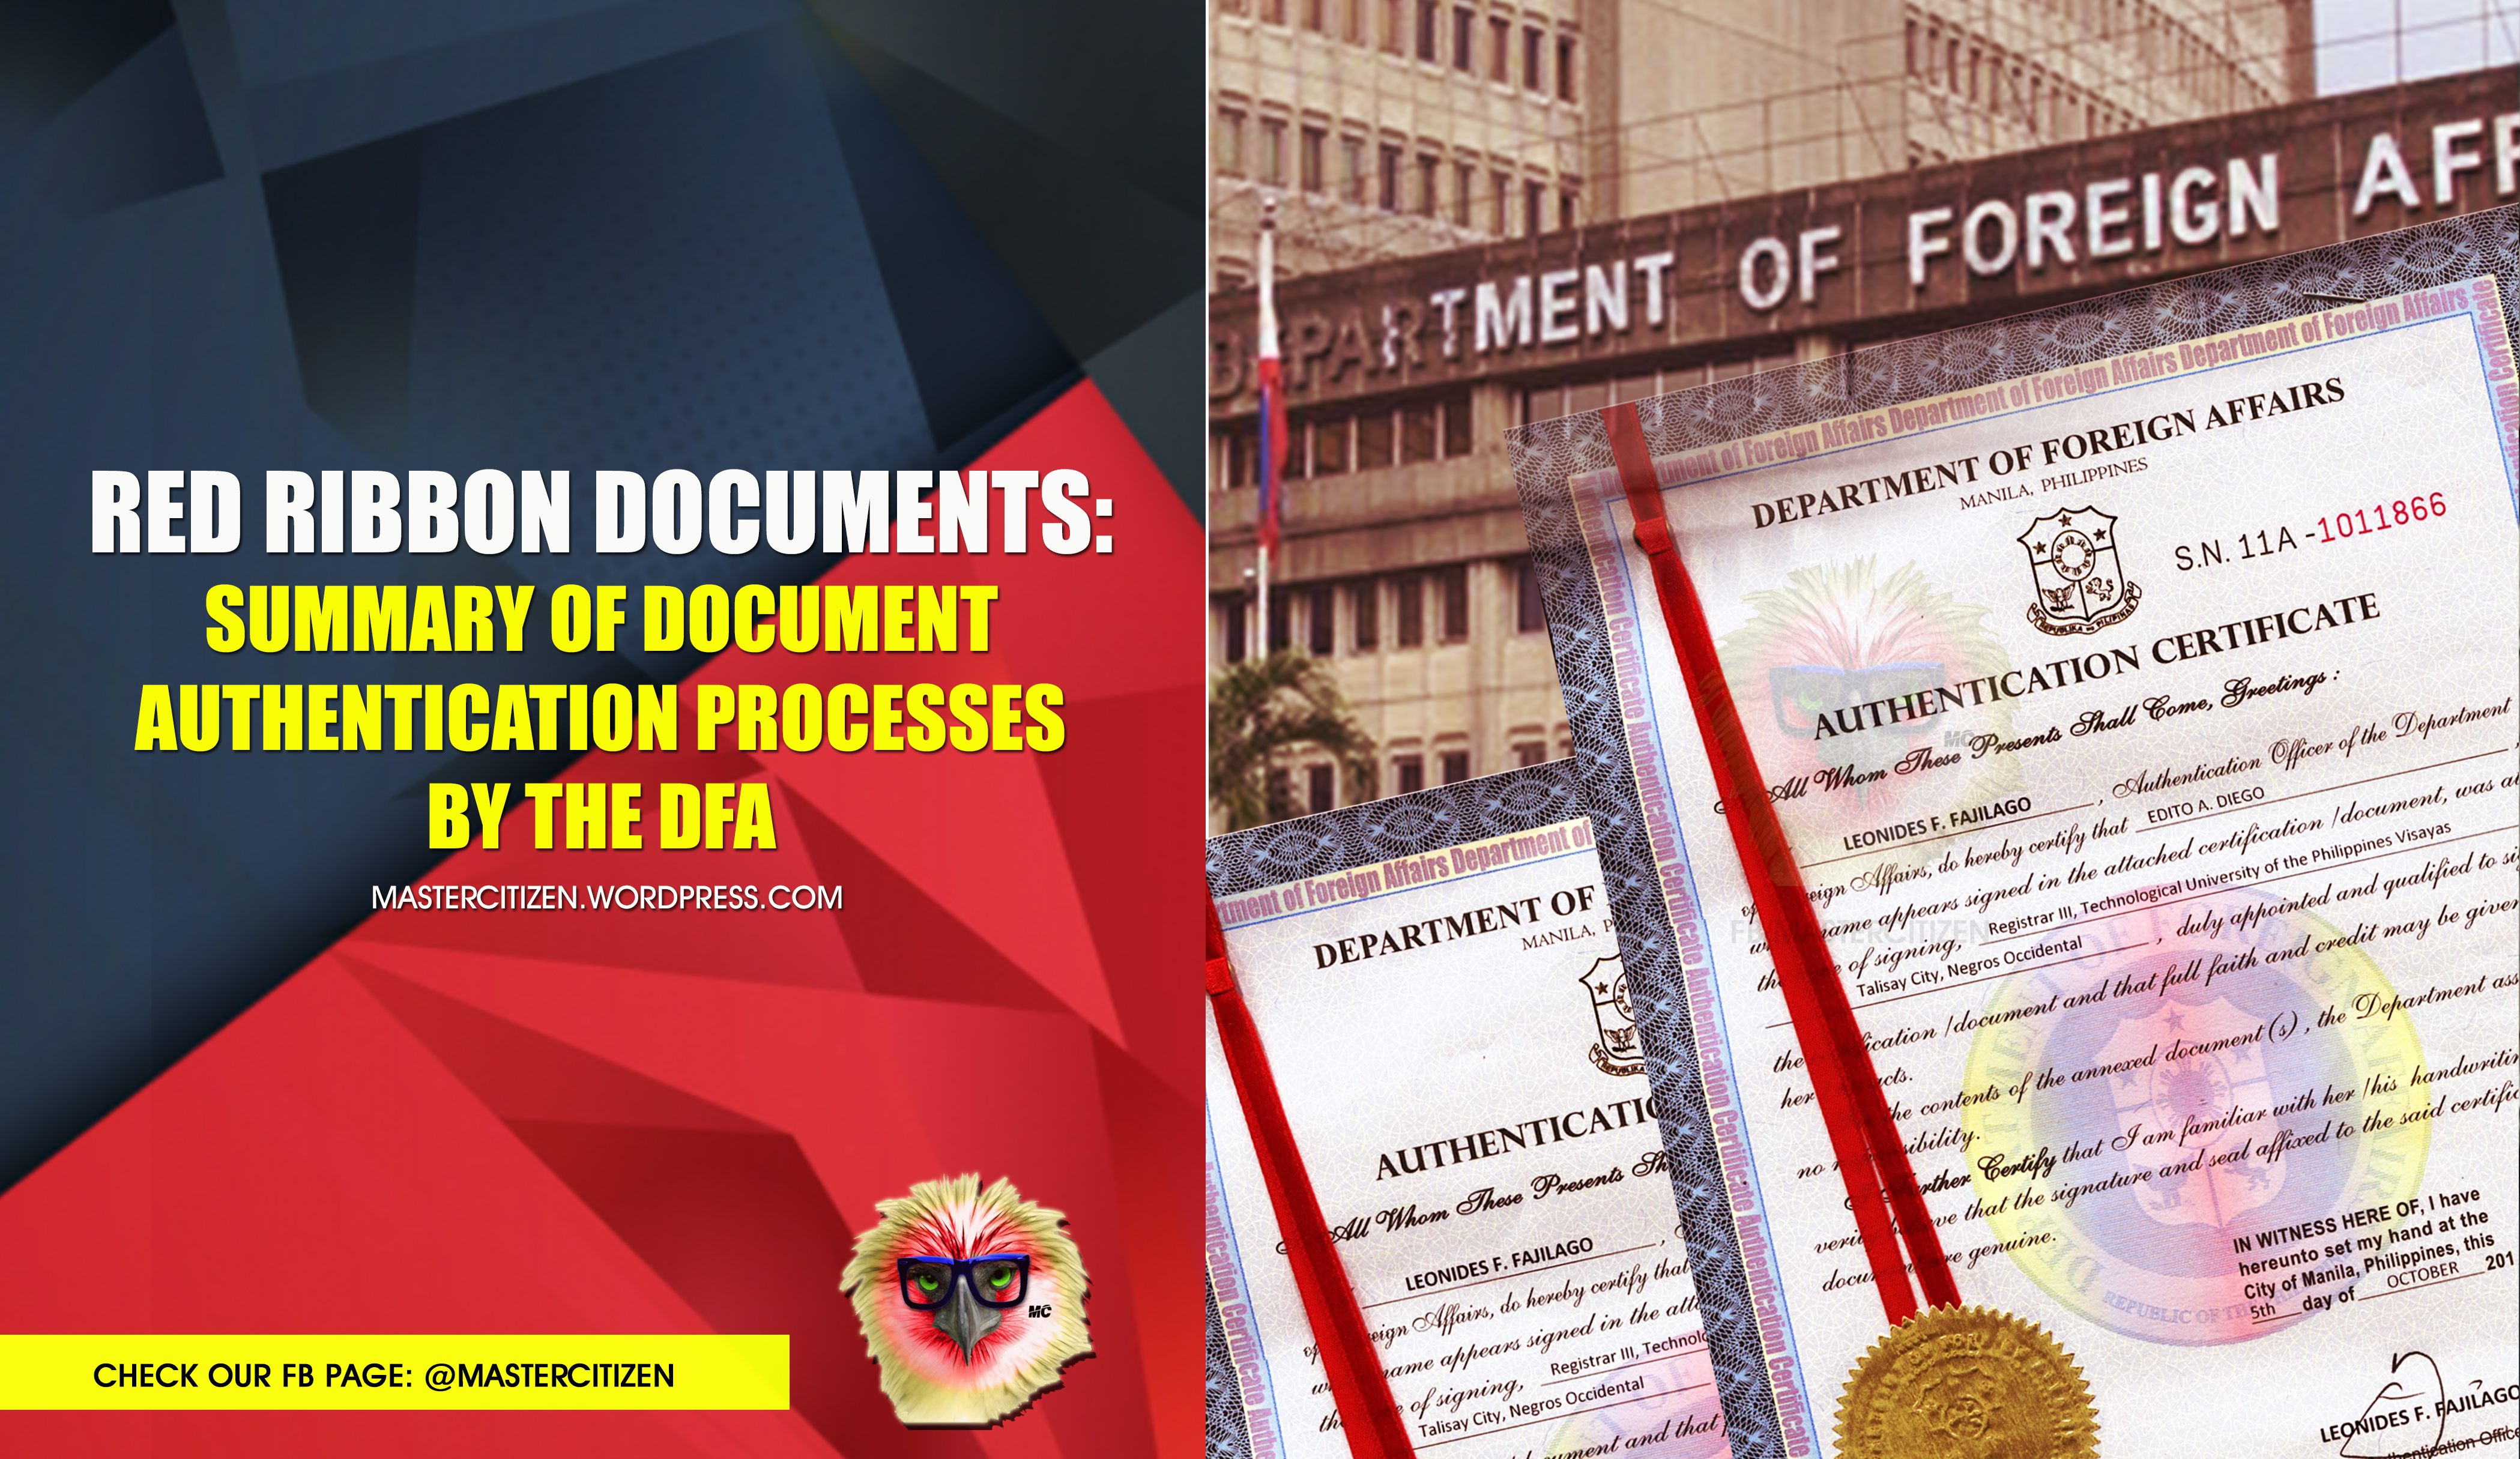 Red ribbon documents summary of document authentication processes red ribbon documents summary of document authentication processes by the dfa mastercitizens blog aiddatafo Gallery